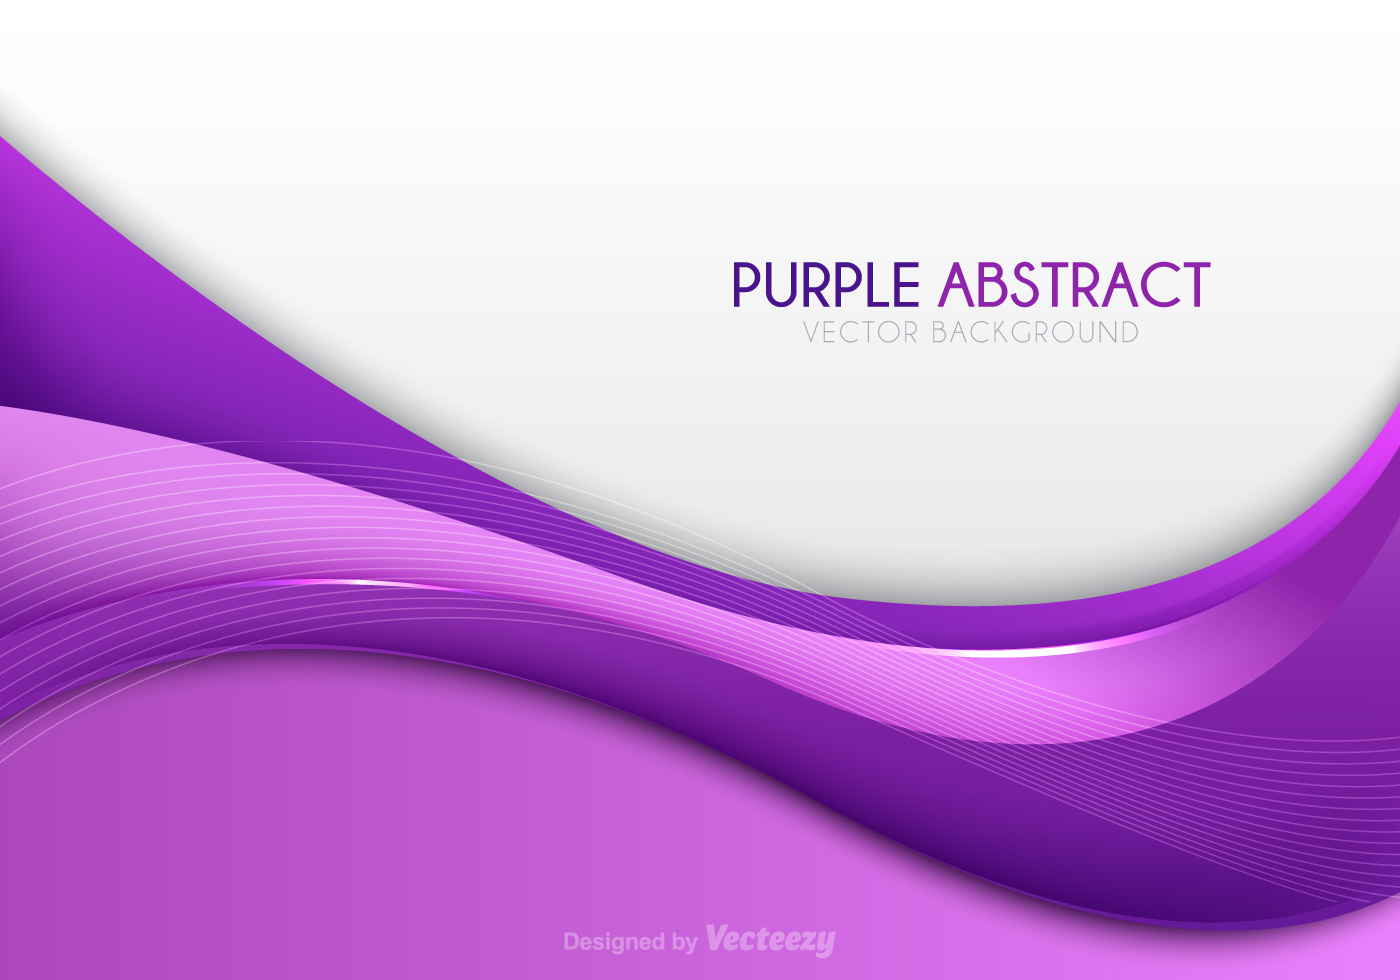 Color Abstract Vector Background Text Frame Stock Vector: Purple Abstract Vector Background